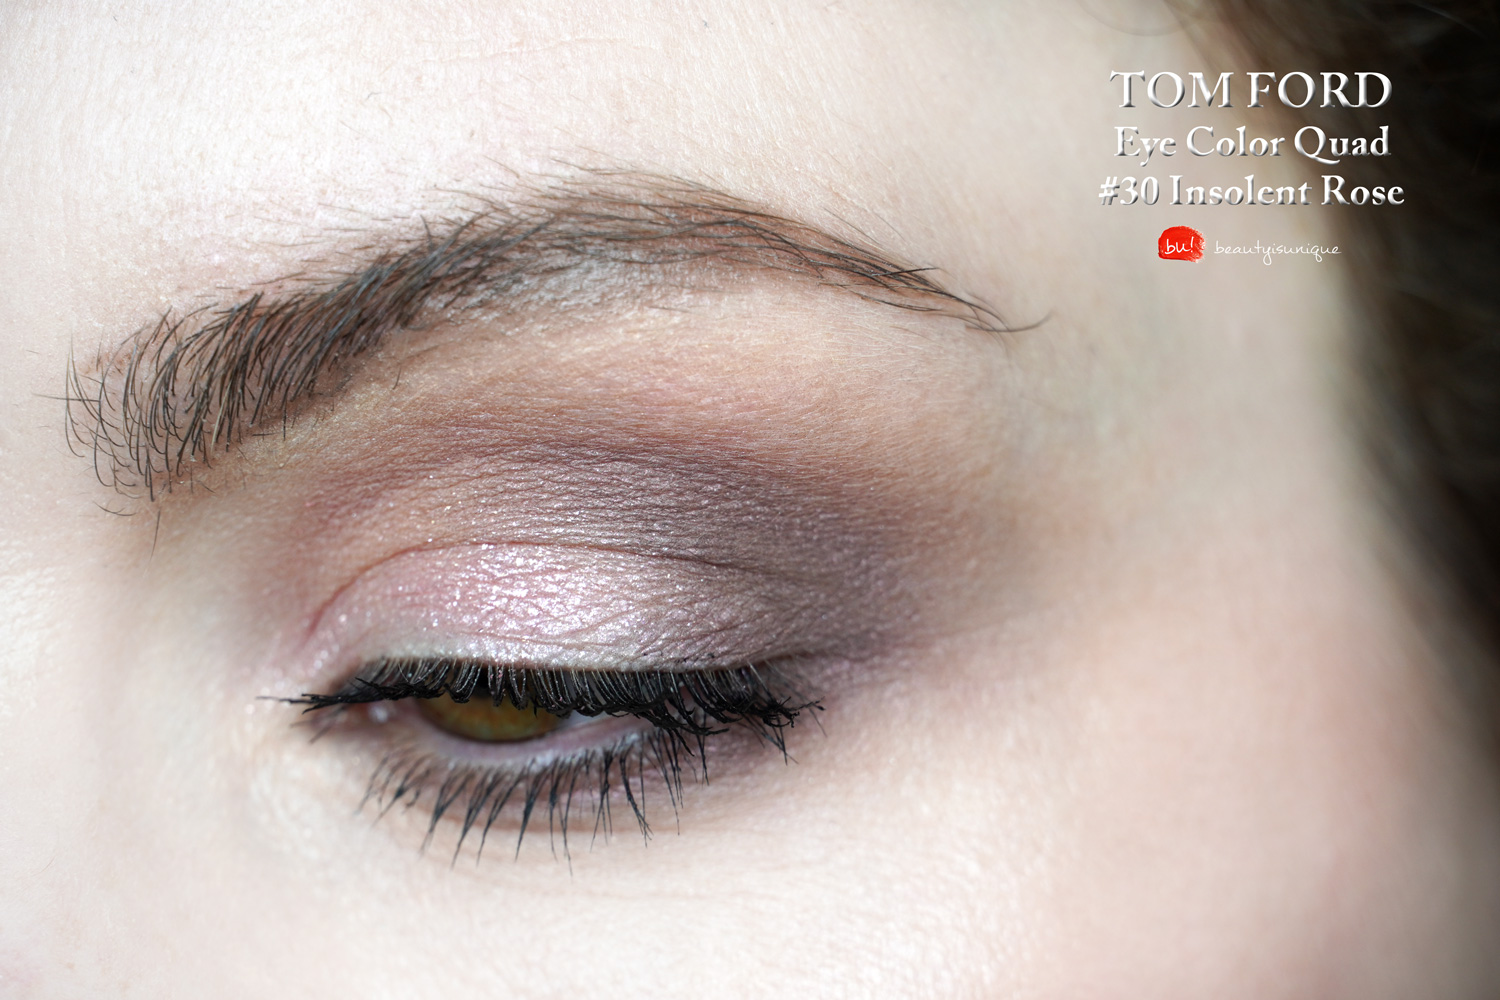 Tom-ford-insolent-rose-palette-swatches